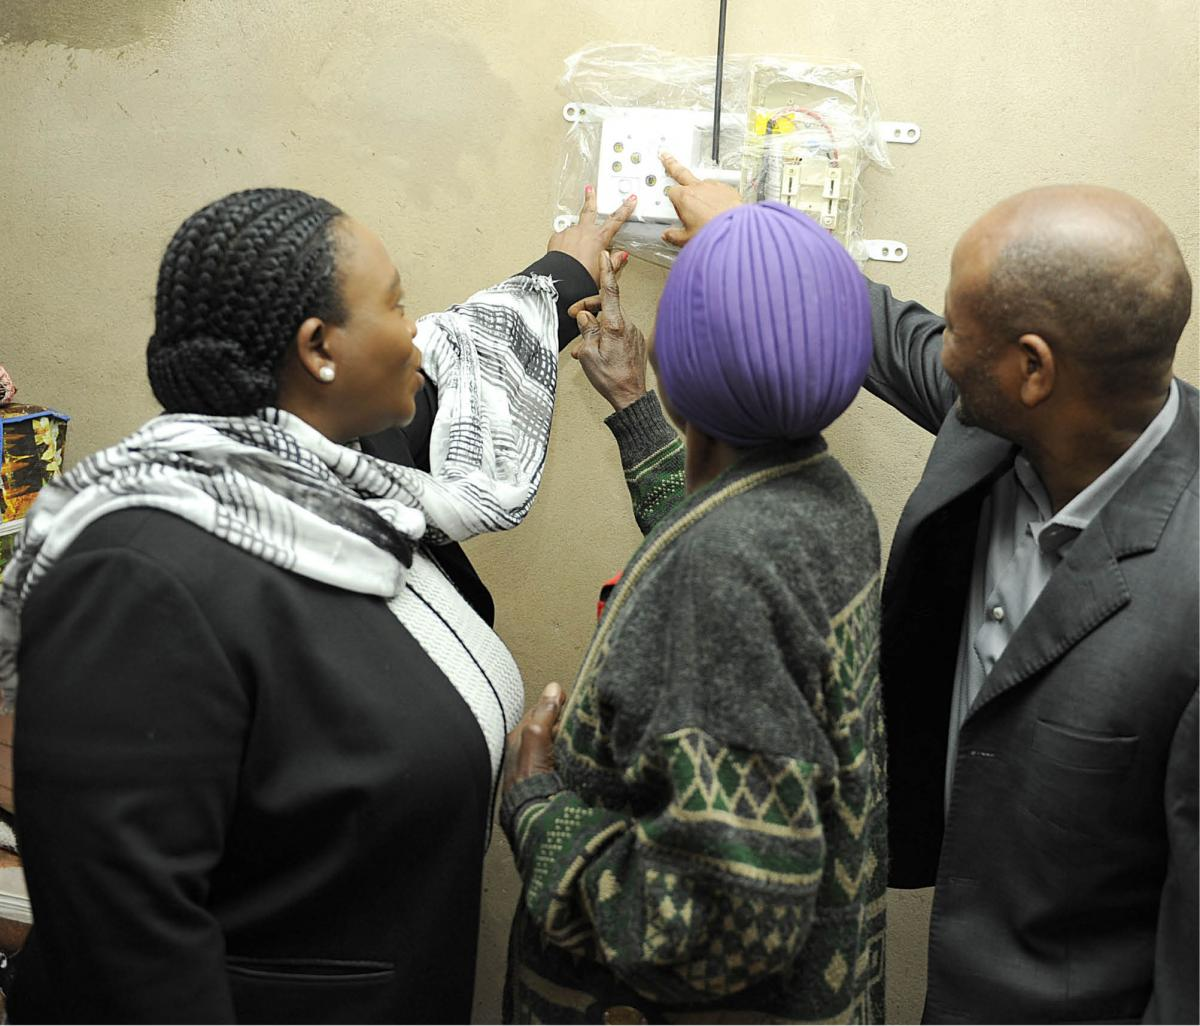 KZN Premier Senzo Mchunu and MEC for Cooperative Governance and Traditional Affairs Nomusa Dube-Ncube show Nozibulo Ntshangase how to load money on her electricity meter.